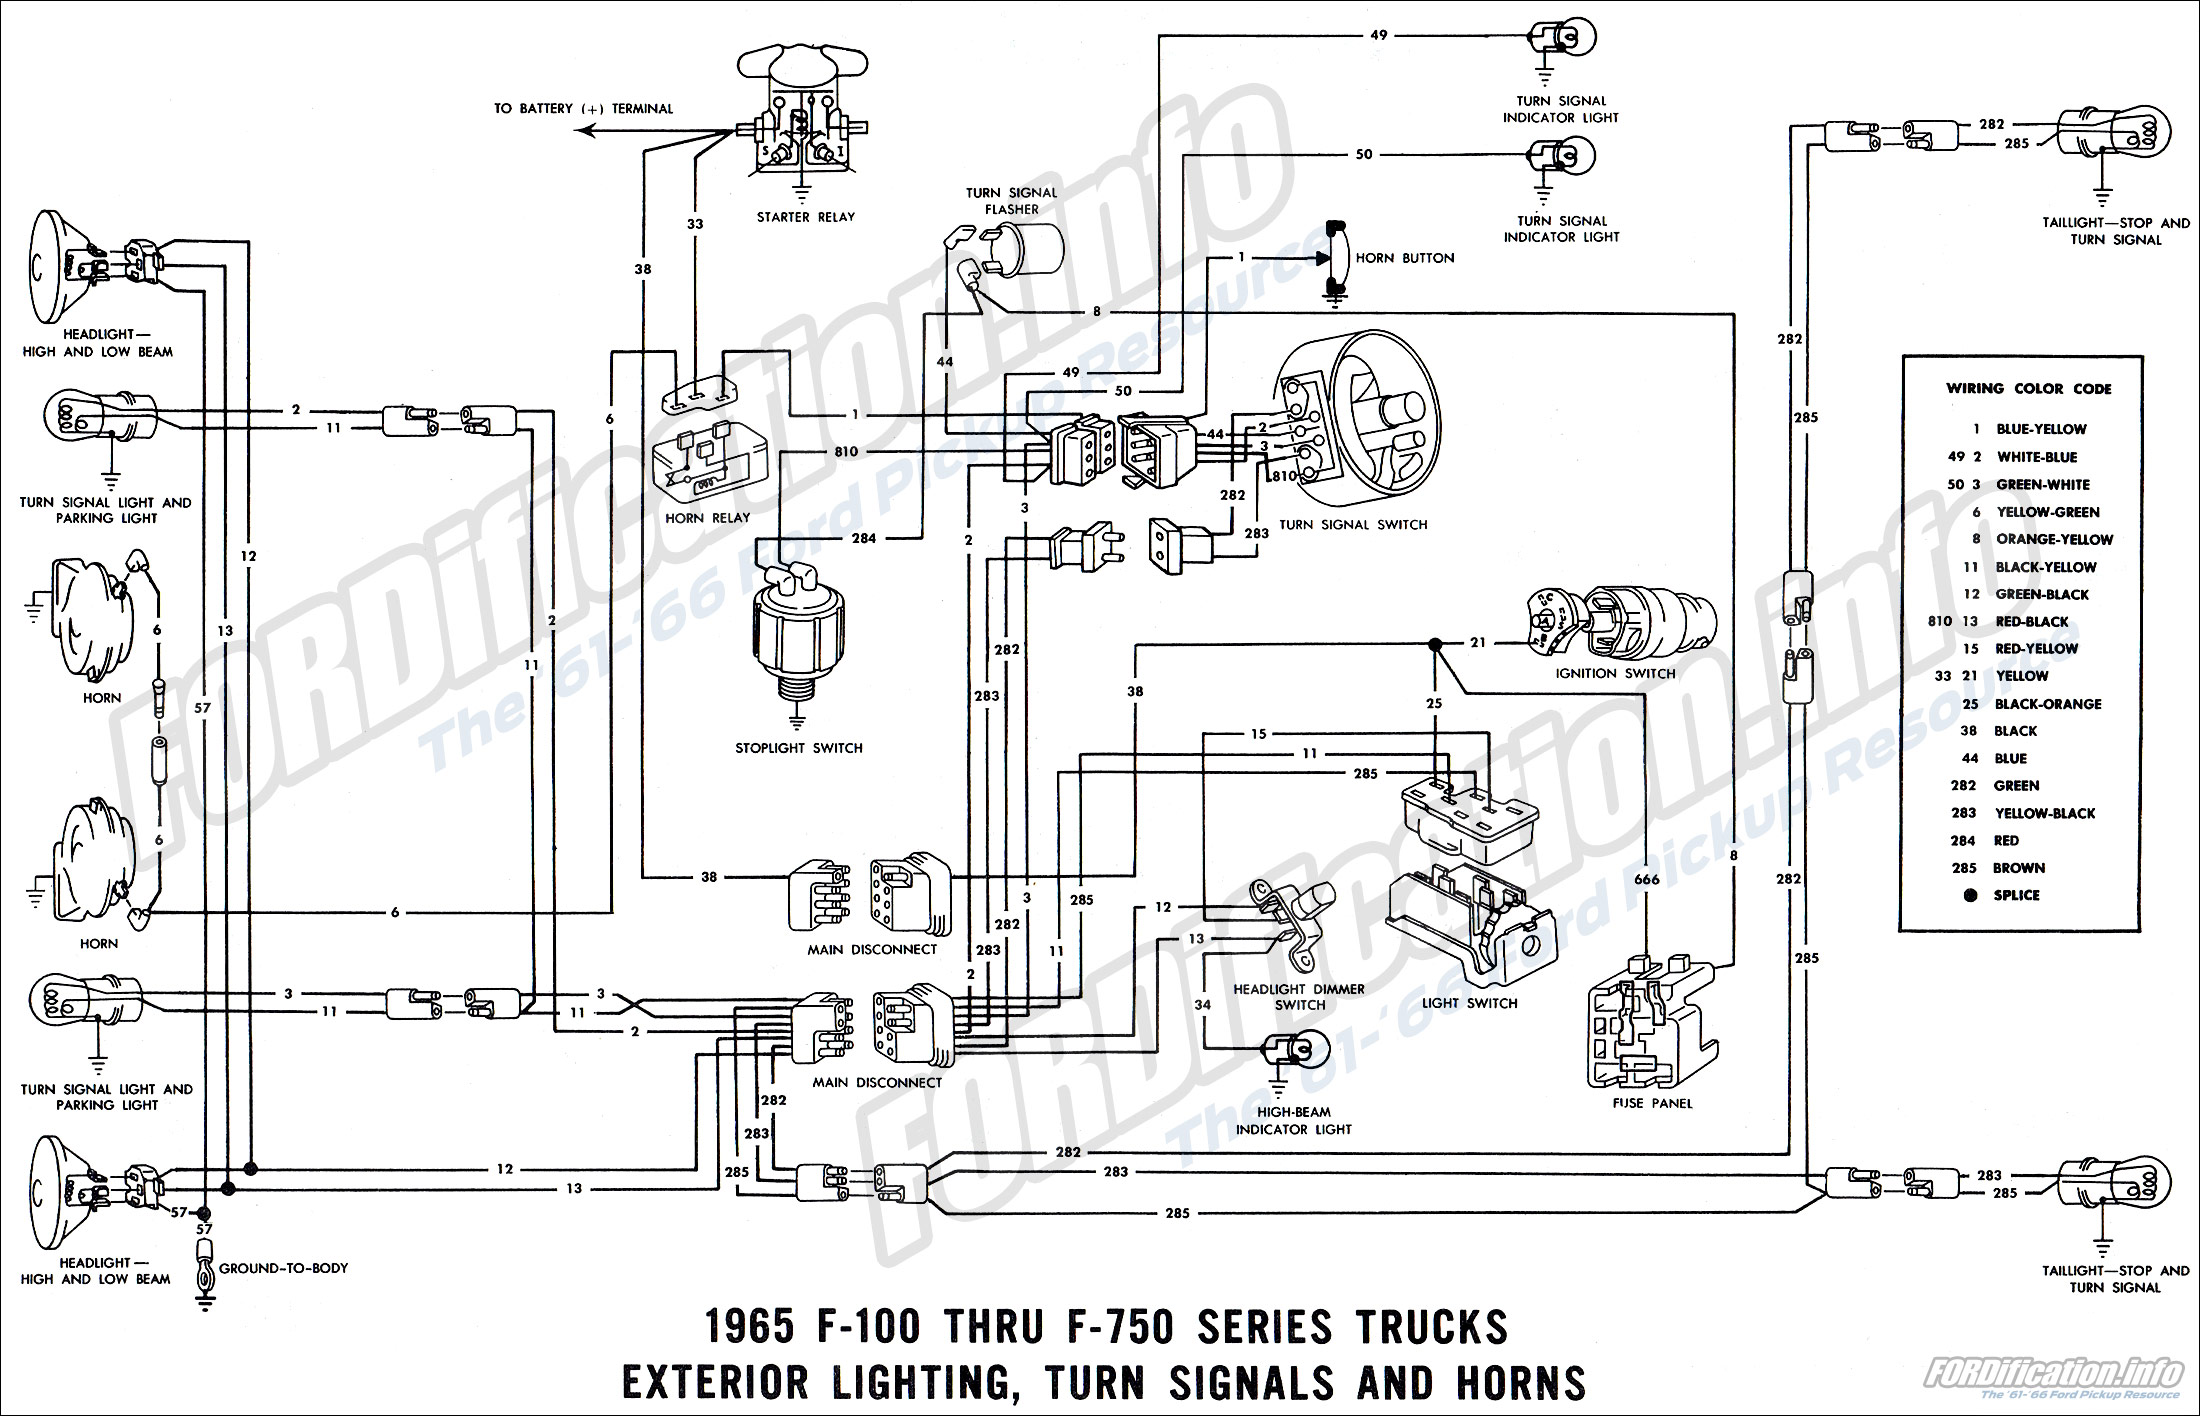 1953 Ford Main Line Wiring Diagram Schematic Diagrams 1956 Mainline Free Download 1965 Lincoln